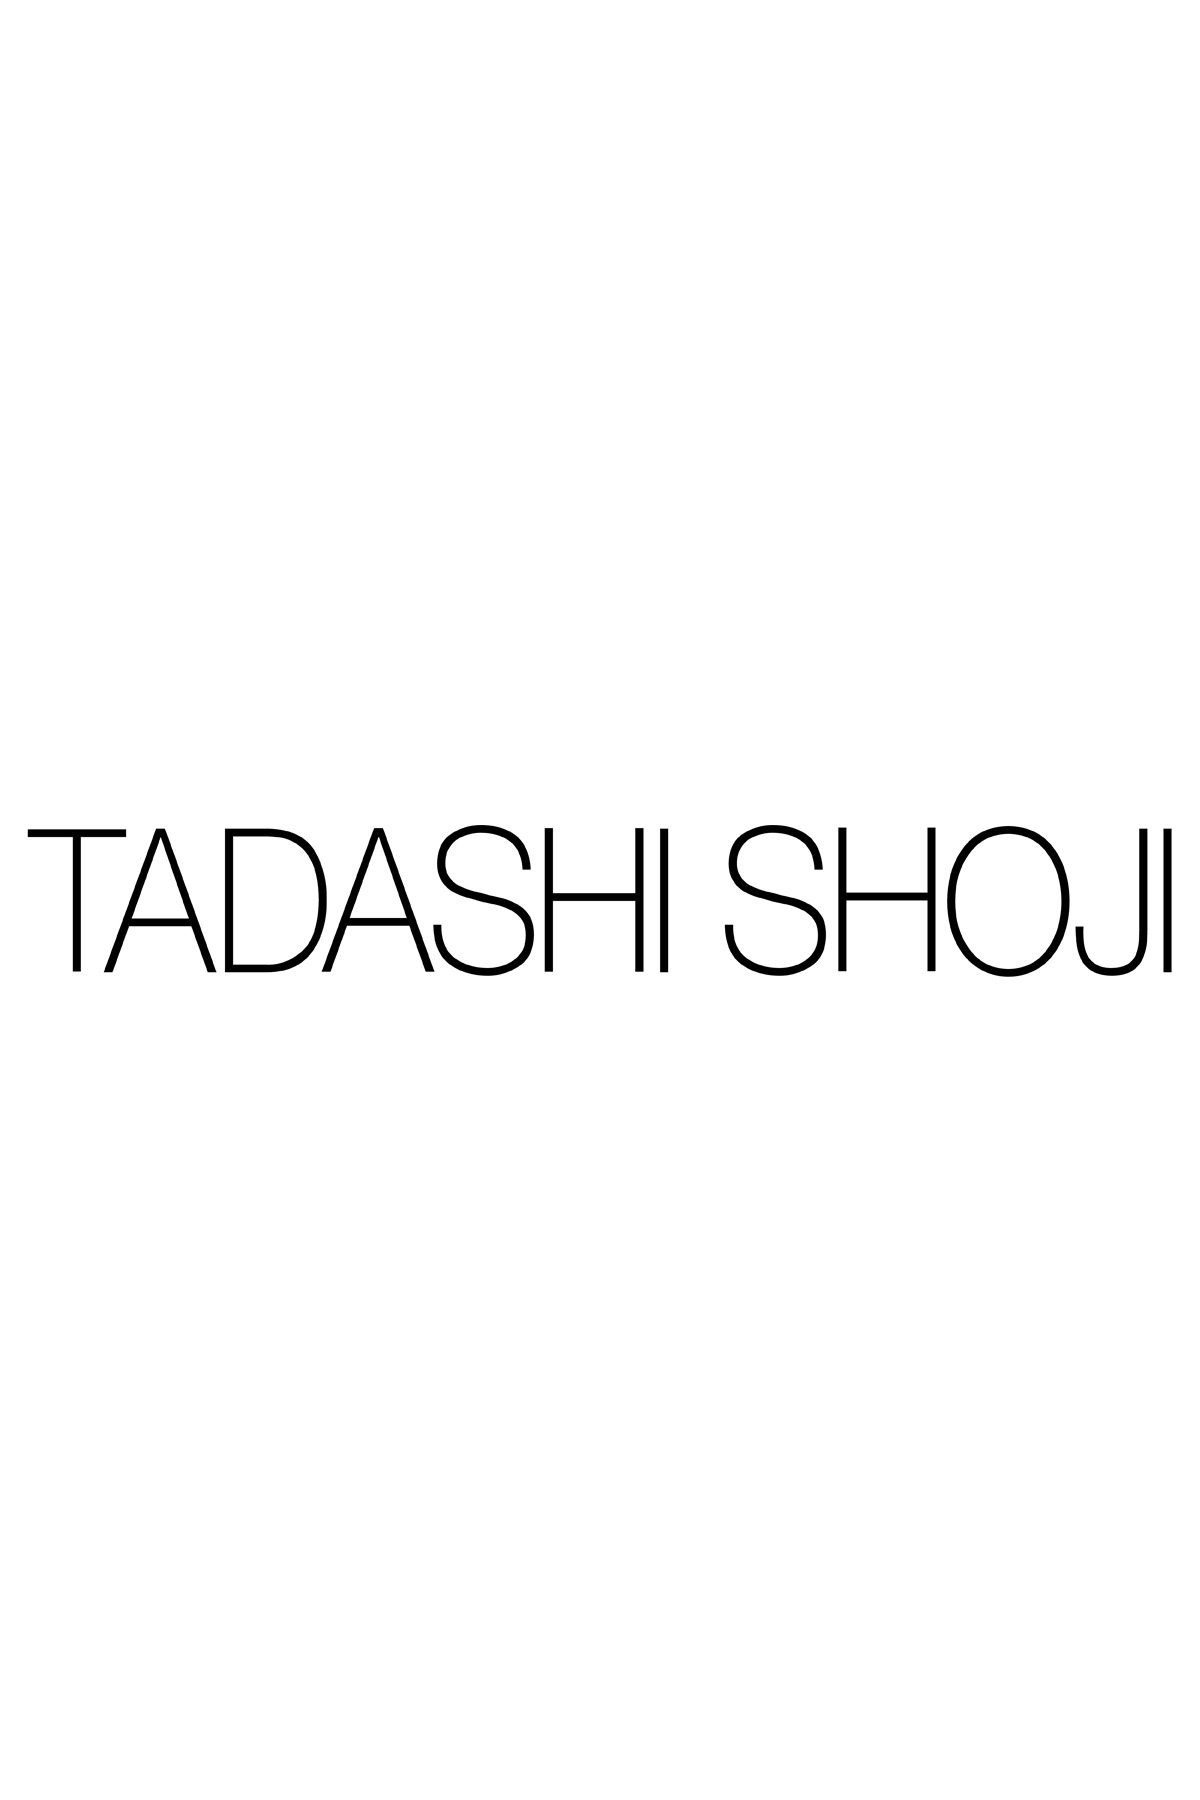 Tadashi Shoji Petite Size - Corded Embroidery on Tulle Cap Sleeve Dress